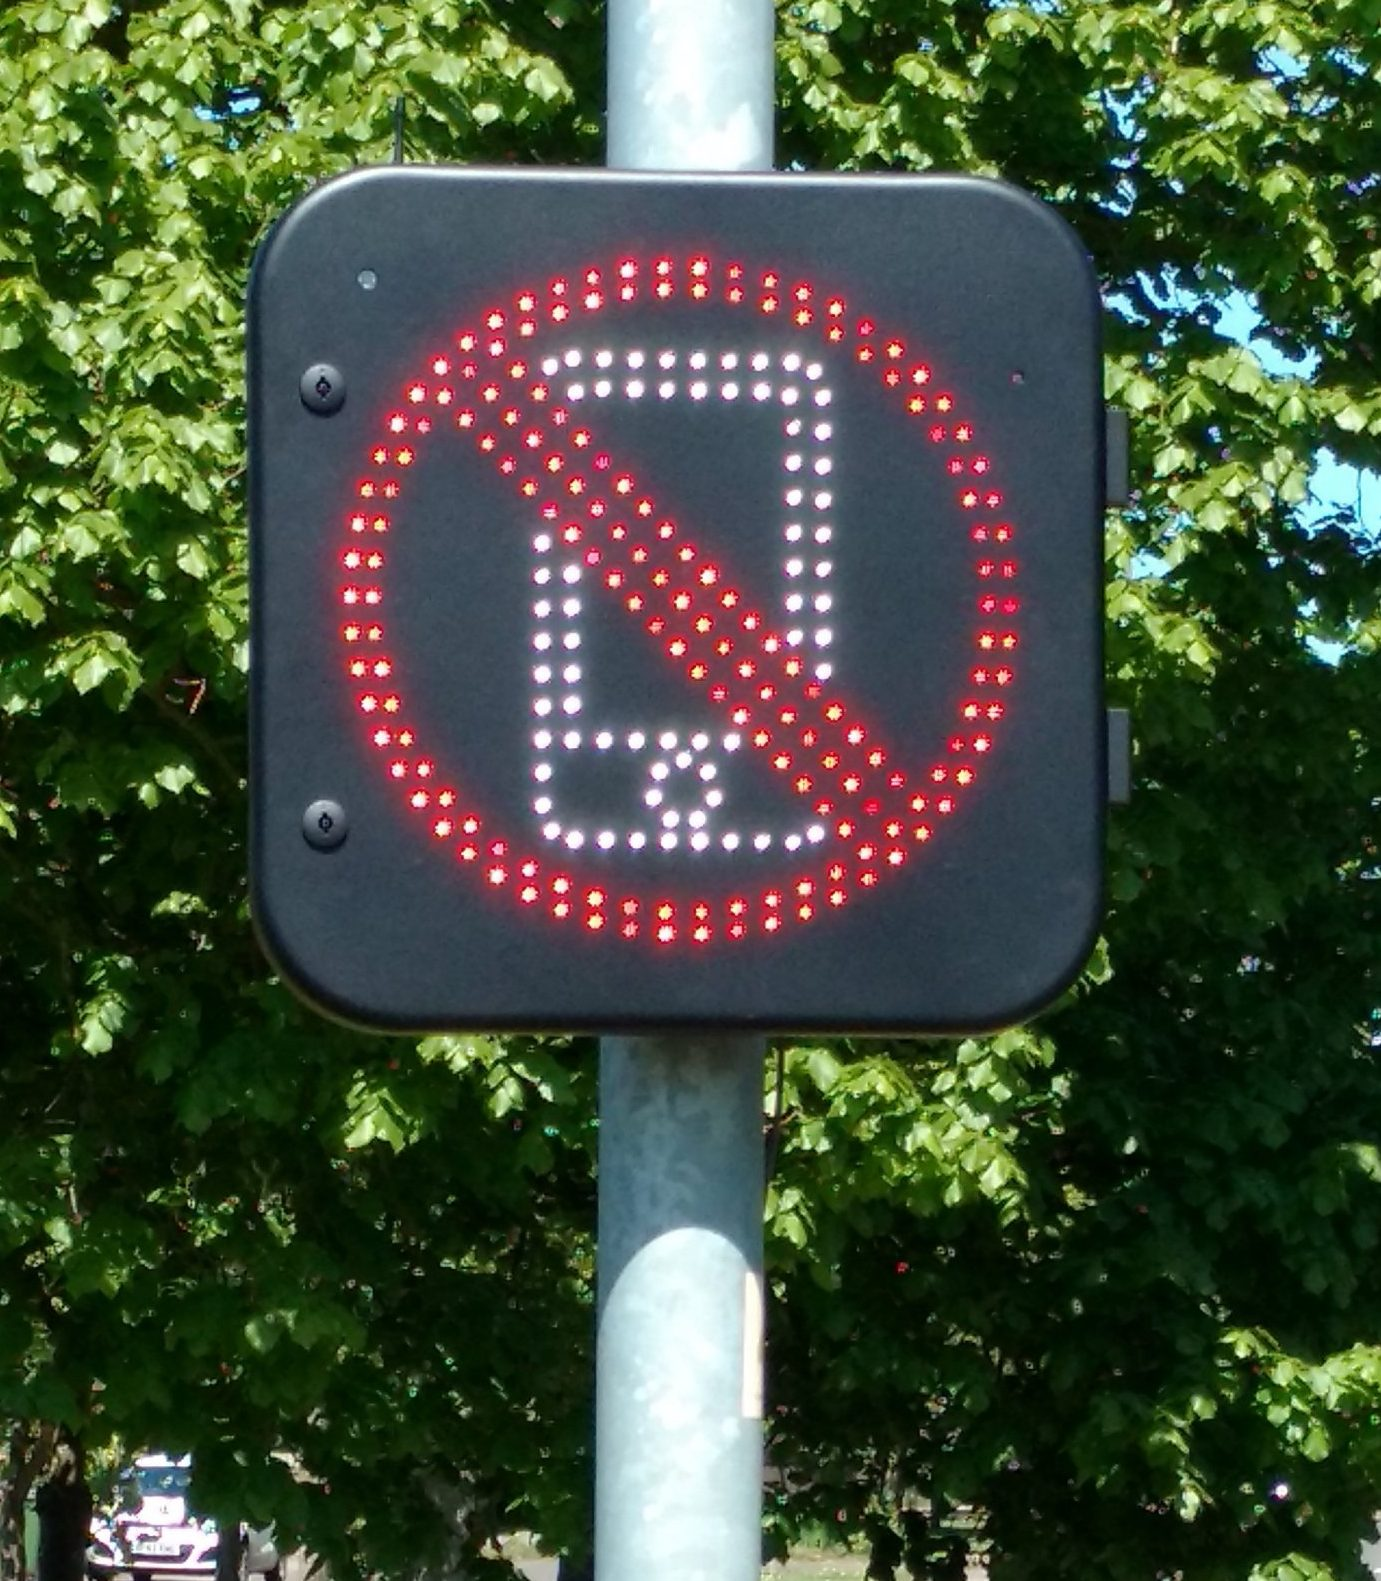 The new sign in Norwich, Norfolk that detects when people are using their phones on the road. Unruly motorists who use their mobile phone while driving will be warned to put it away by an innovative new road sign. The sign, which is launched today in Norwich, Norfolk(10july), is the first of its kind in Britain and can detect when signals are being transmitted by a handset inside a car or simply its Bluetooth system. Similar to speed warning signs which flash when the speed limit is exceeded, the road sign will light up as the driver passes - prompting them to stop using their phone.